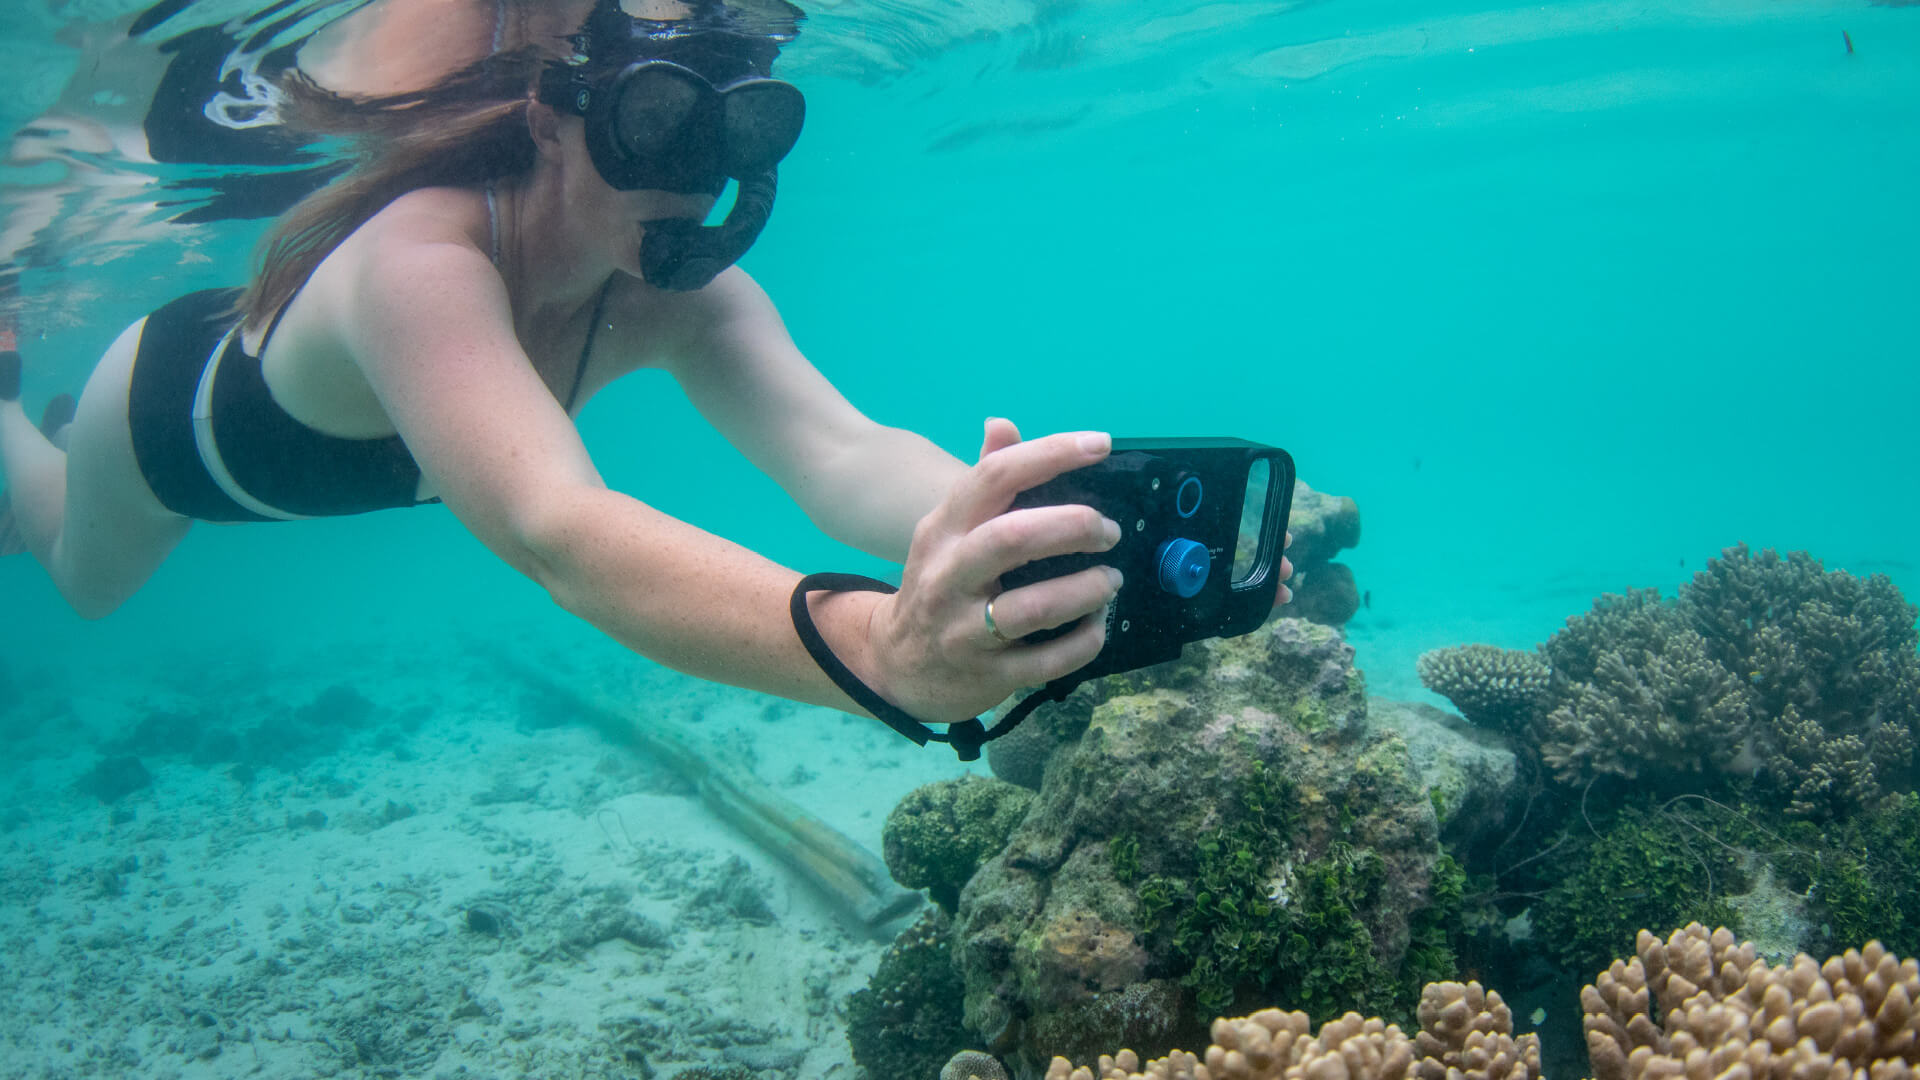 WHAT CAMERA TO USE IN RAJA AMPAT